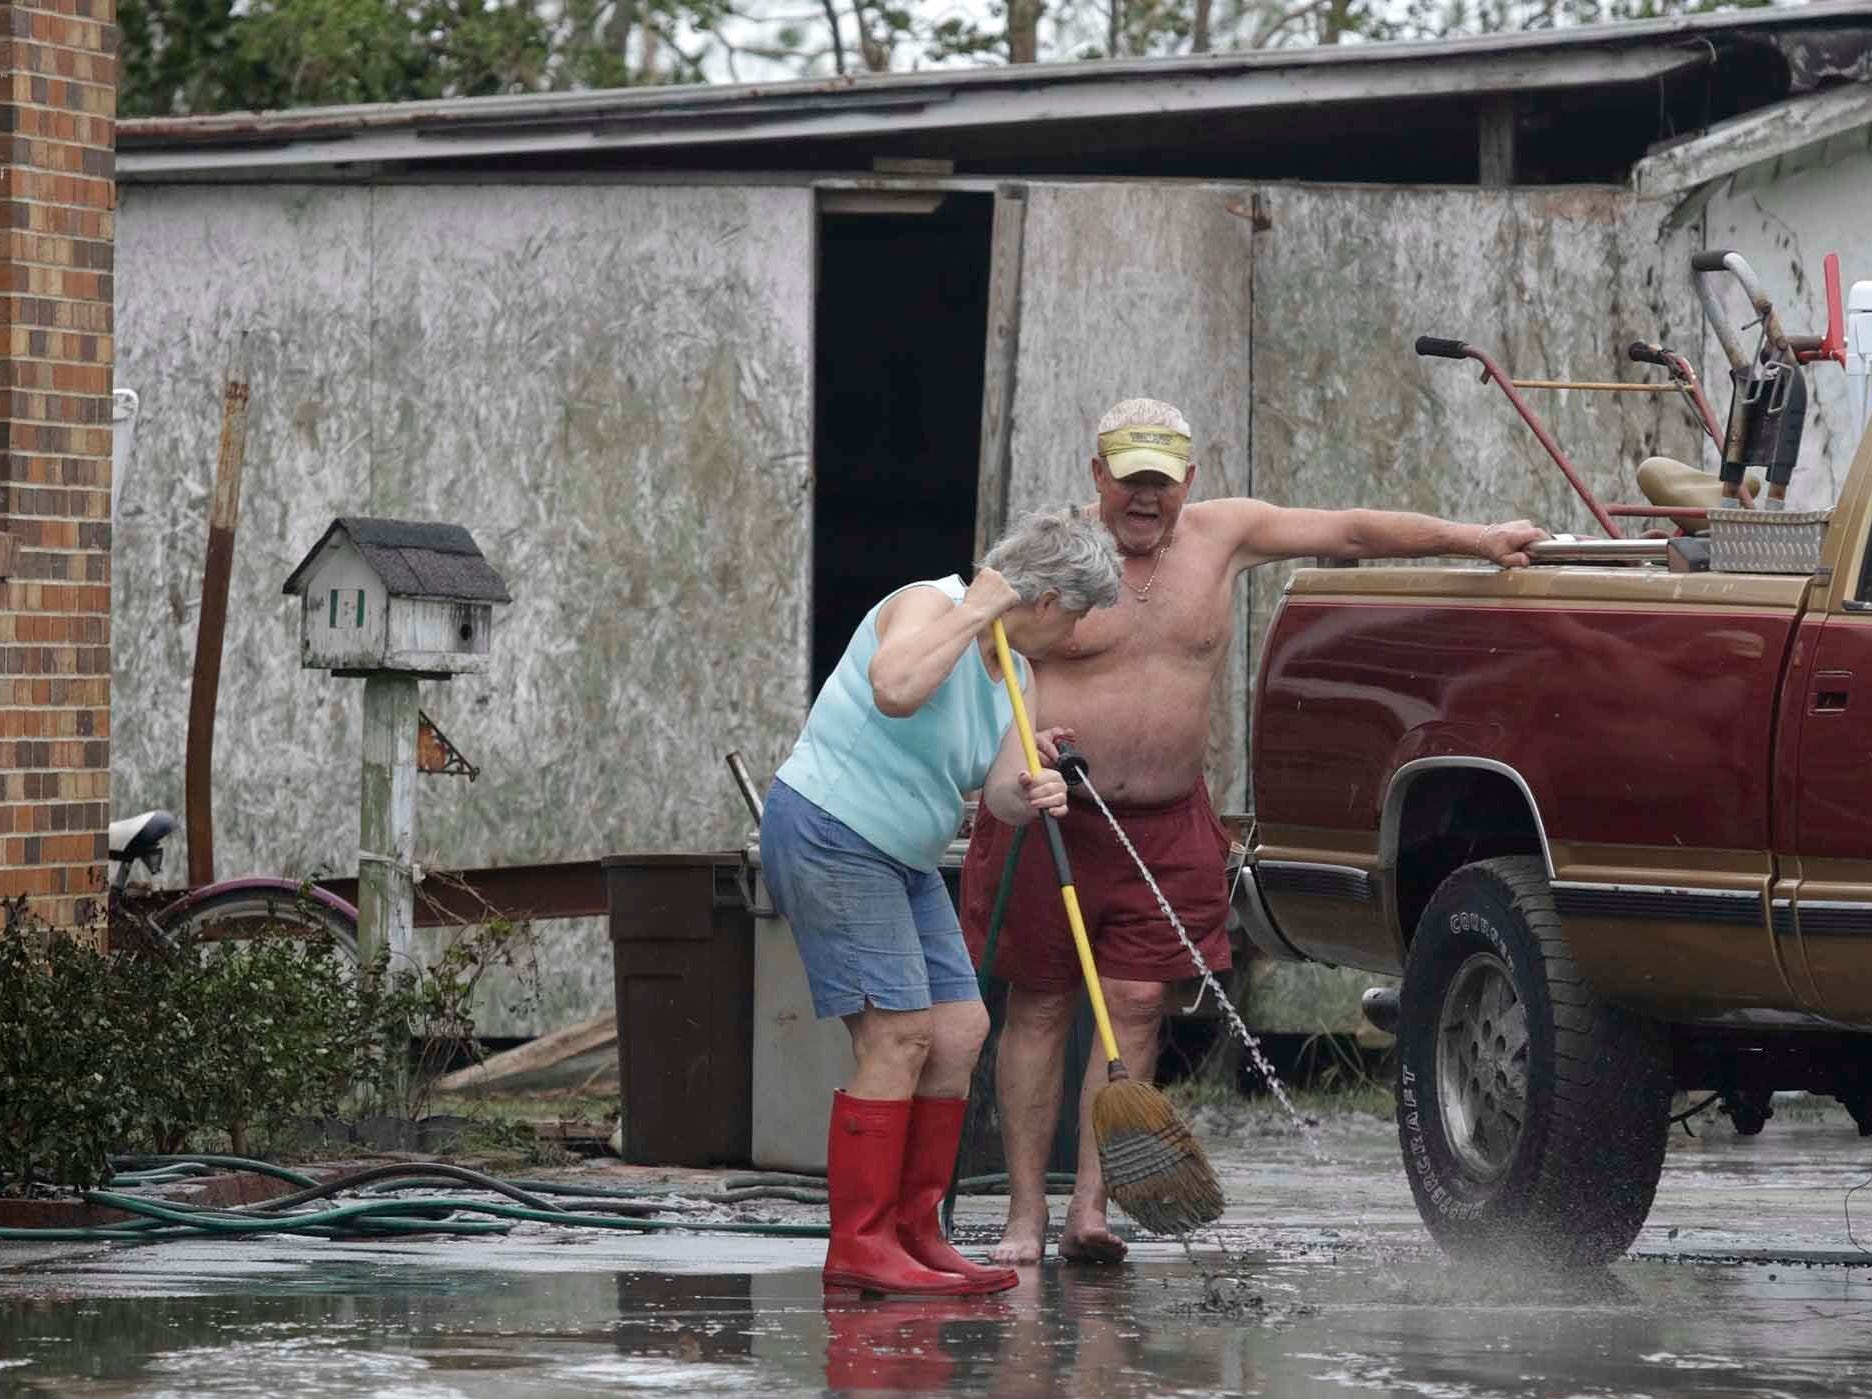 Lynda Willis and Gene Gillikin work to remove mud after Hurricane Florence hit Davis N.C.,Saturday, Sept. 15, 2018. It was said the storm surge was 4 1/2 feet in Davis, NC.